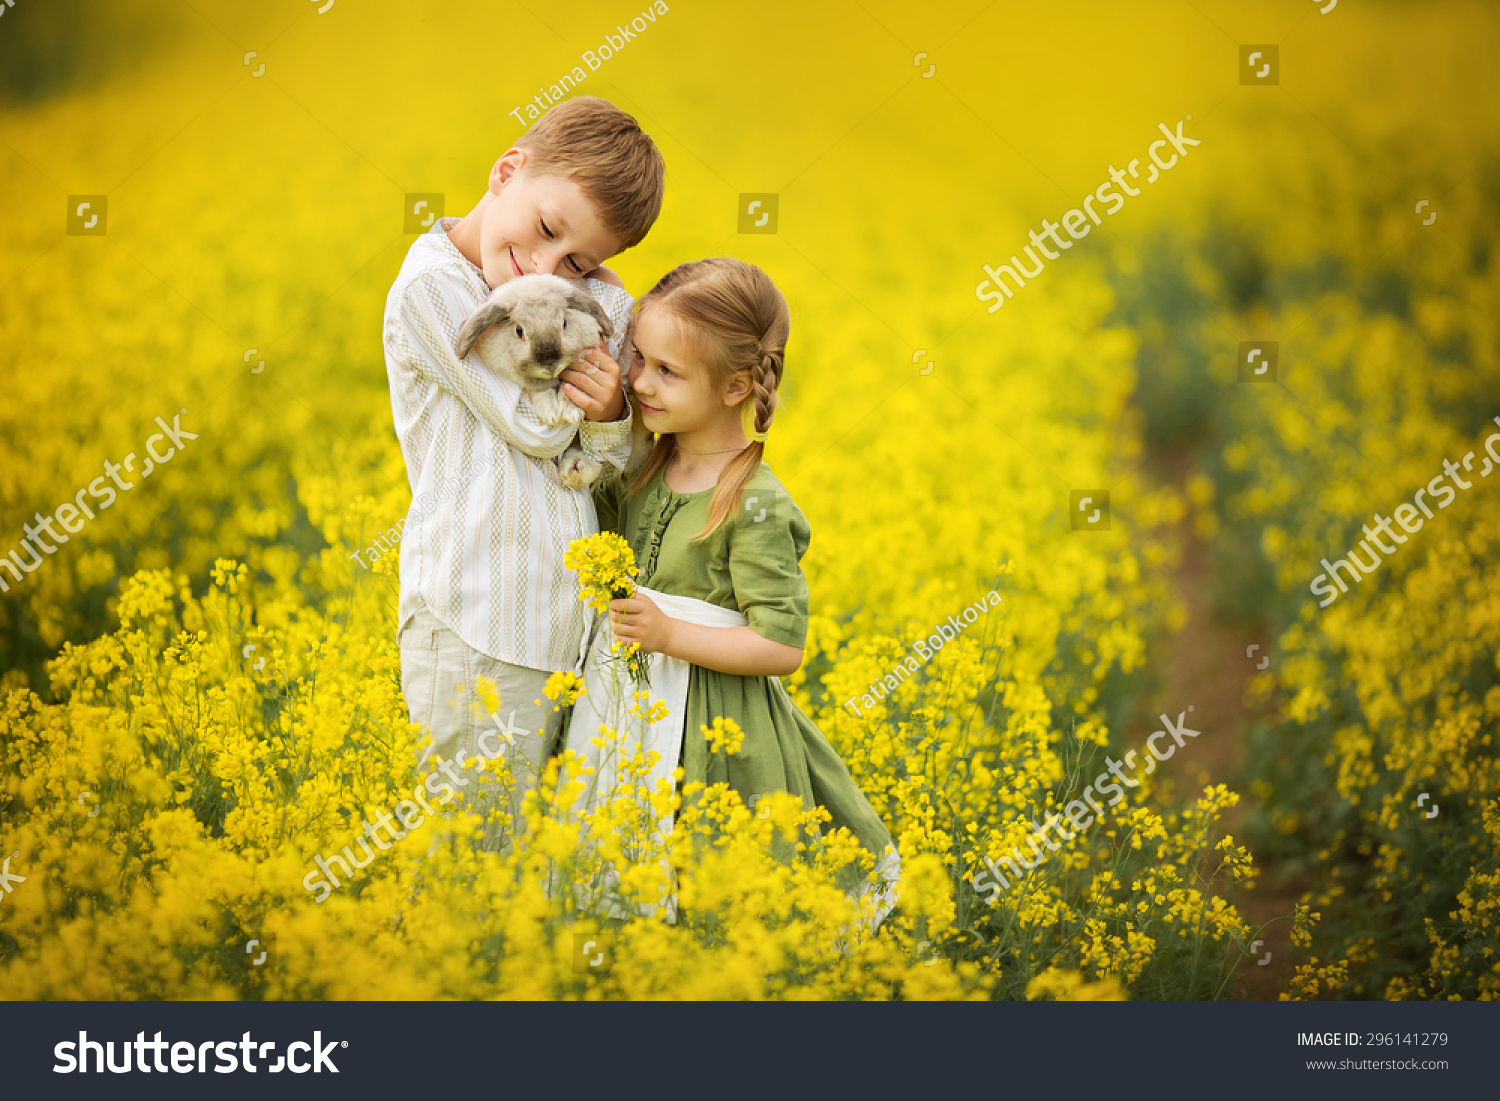 White apron girl - Little Pretty Girl In Green Dress With White Apron And Young Boy Holding A Rabbit In